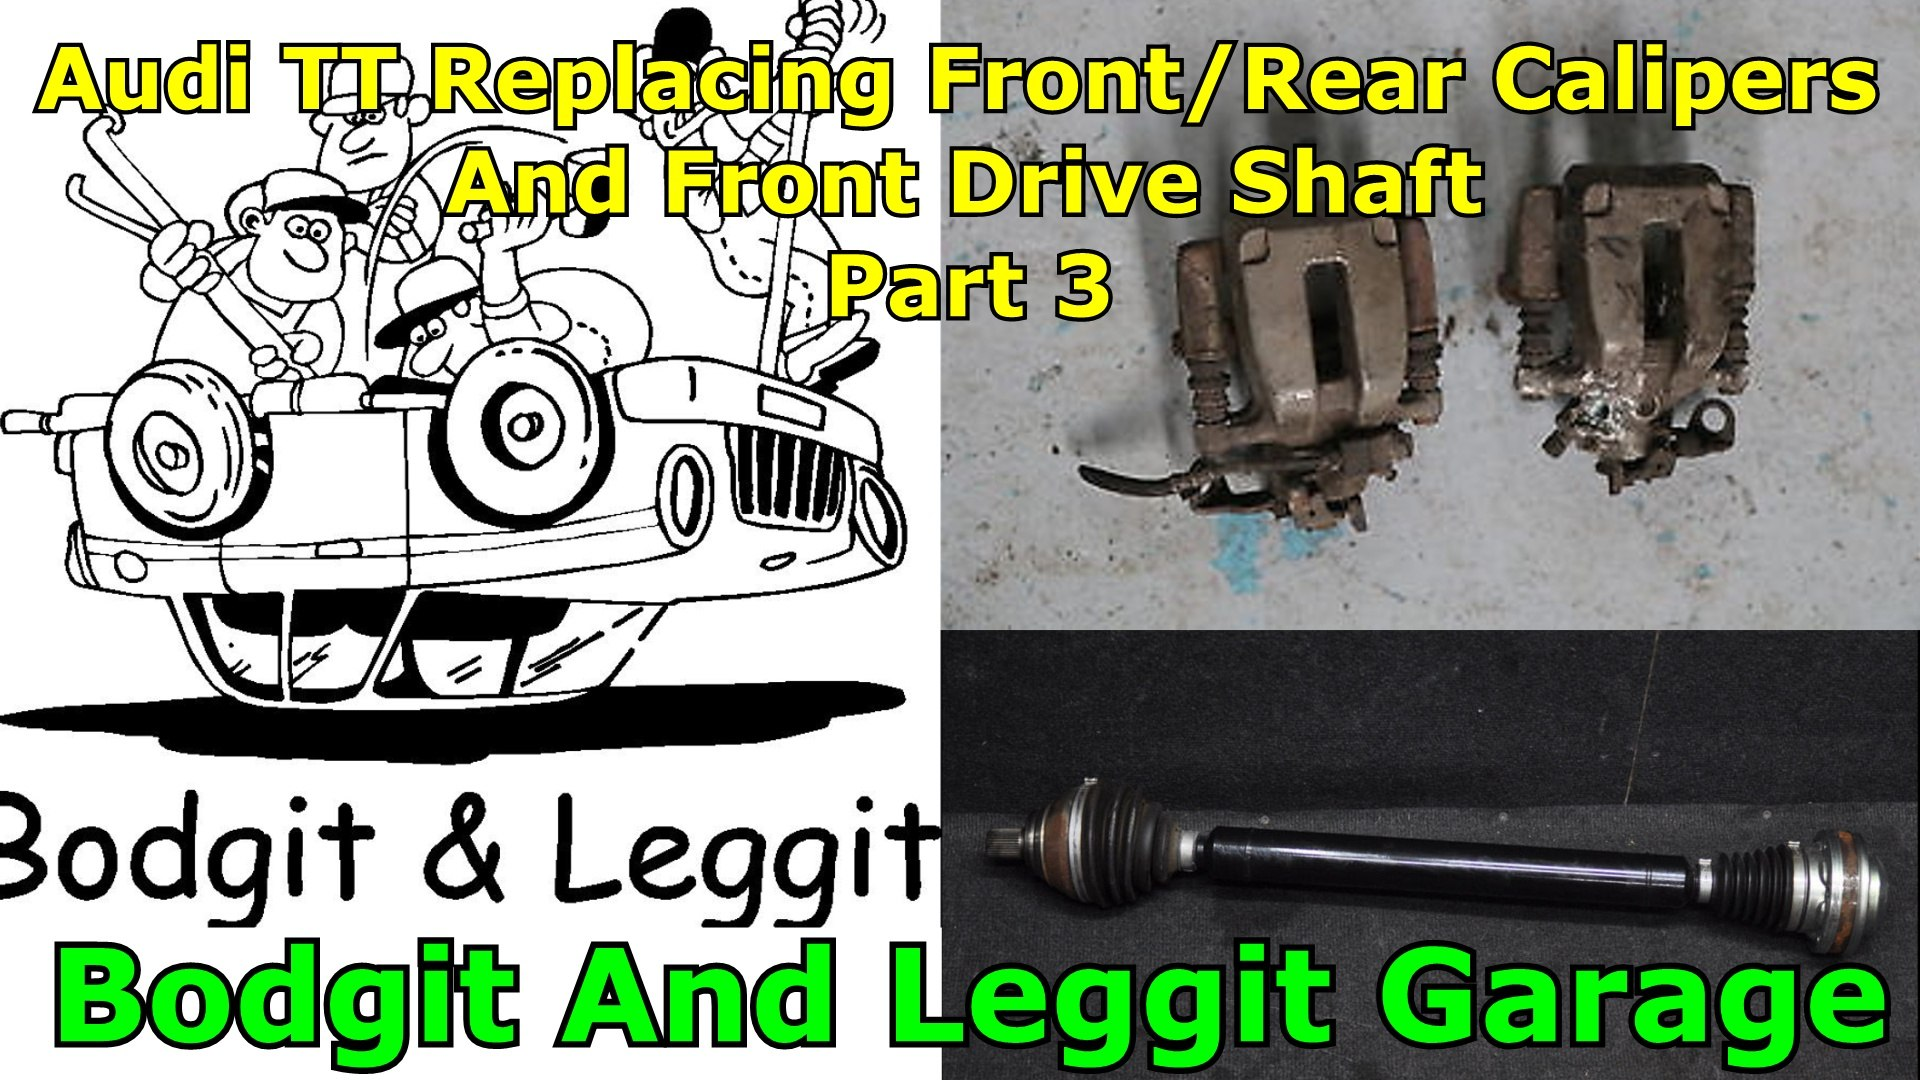 Audi TT Replacing front/Rear calipers front drive shaft part3 bodgit and leggit garage